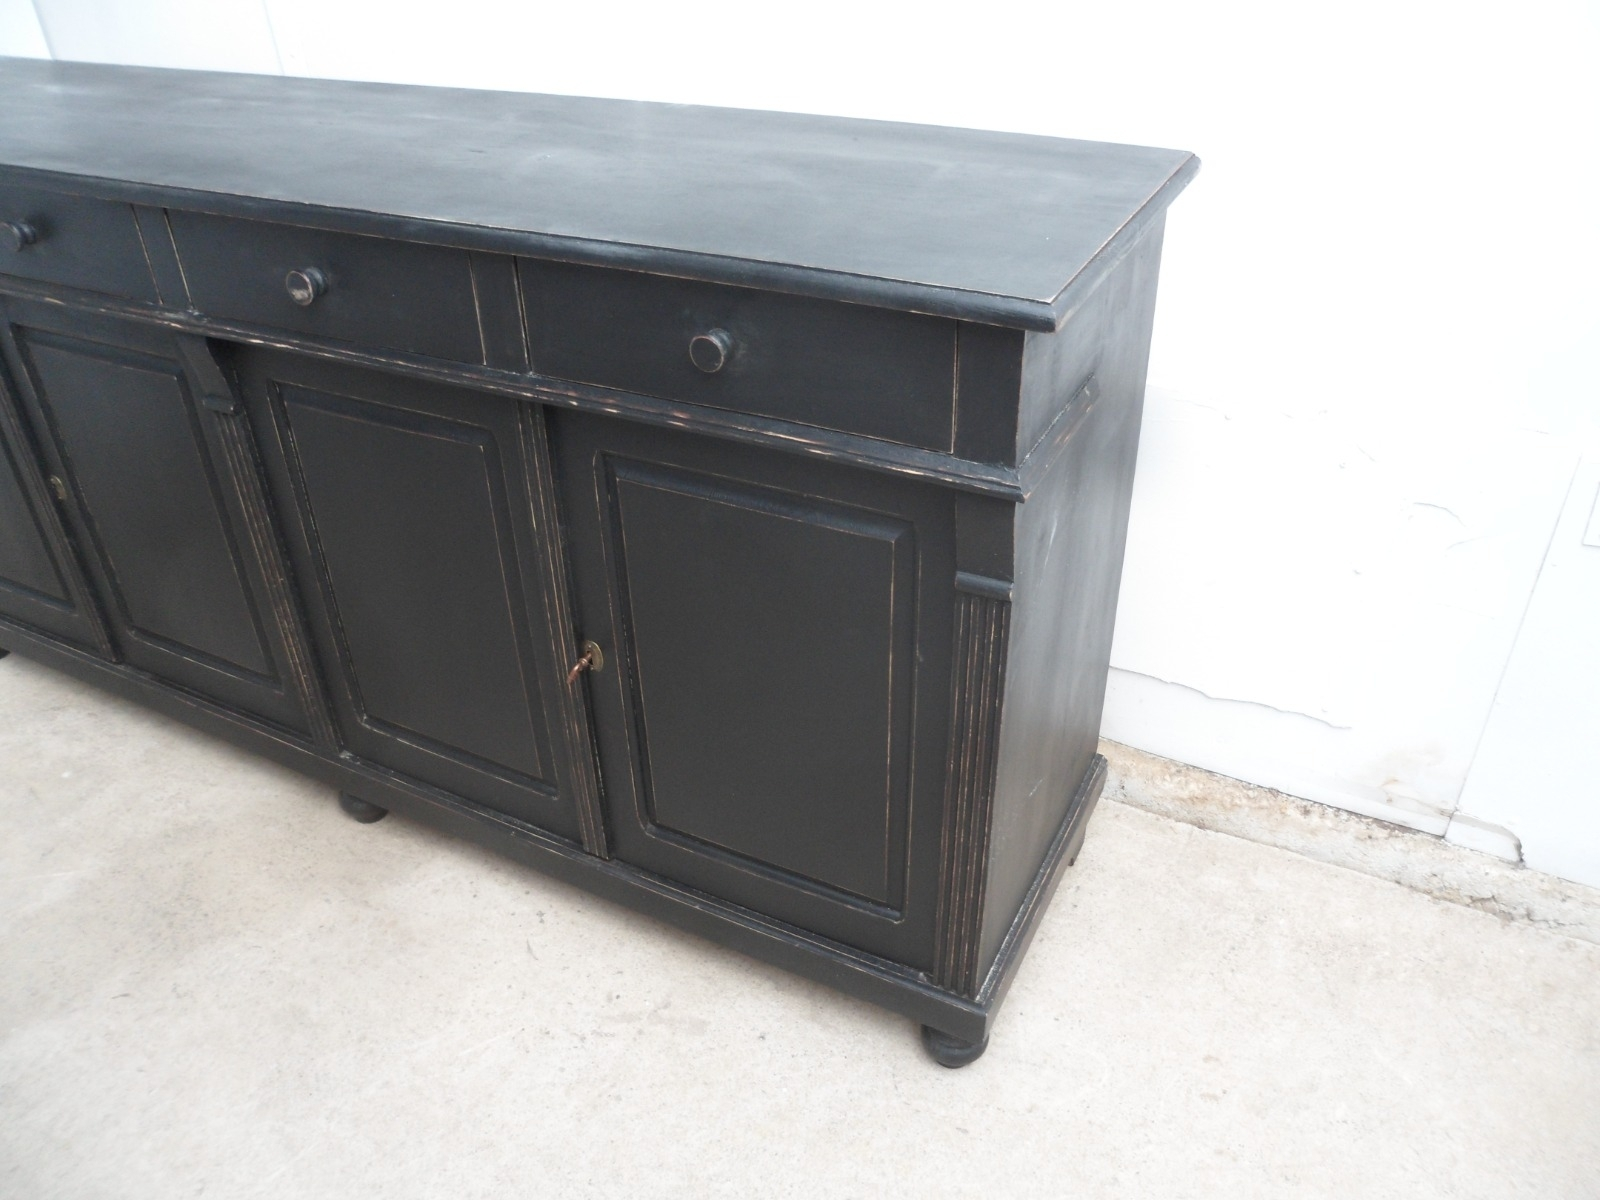 Beautifully Painted Black Pine 4 Door Kitchen Dresser Base Sideboard pertaining to Iron Pine Sideboards (Image 4 of 30)